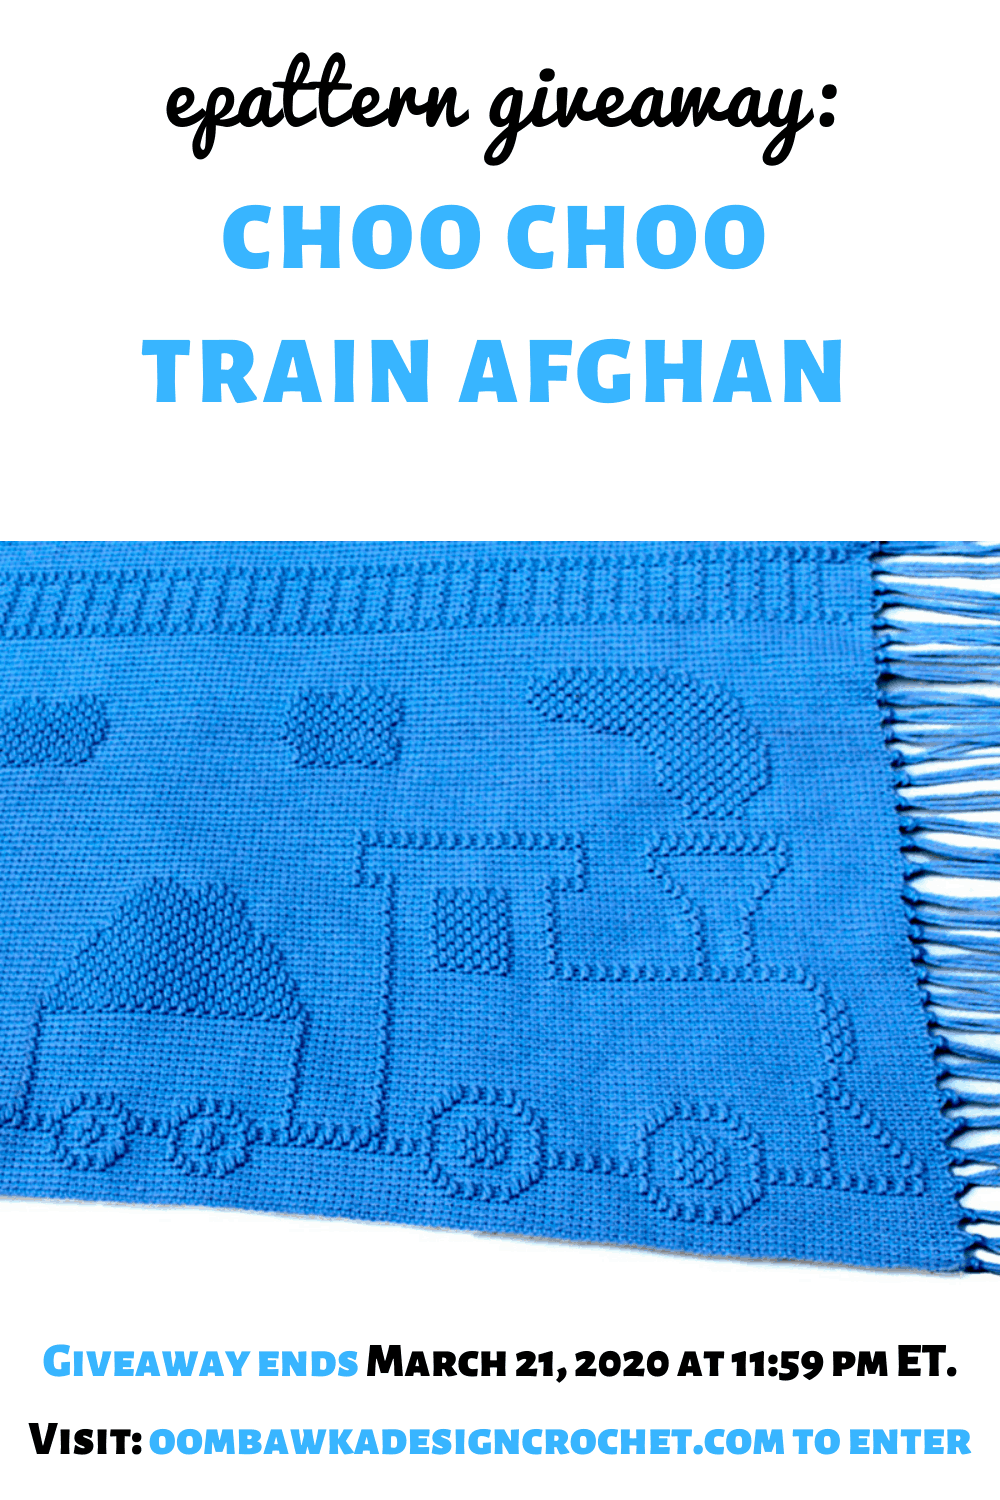 Choo Choo Train Afghan ePattern from Carol Hegar at Shady Lane Original Crochet Designs. 🚂 Book Review and Giveaway at Oombawka Design Crochet. Ends March 21, 2020 at 11:59 pm ET. 🚂 The Choo Choo Train Afghan is perfect for any train enthusiast and includes an old fashioned steam engine, coal car, box car, caboose, train signals and train tracks.